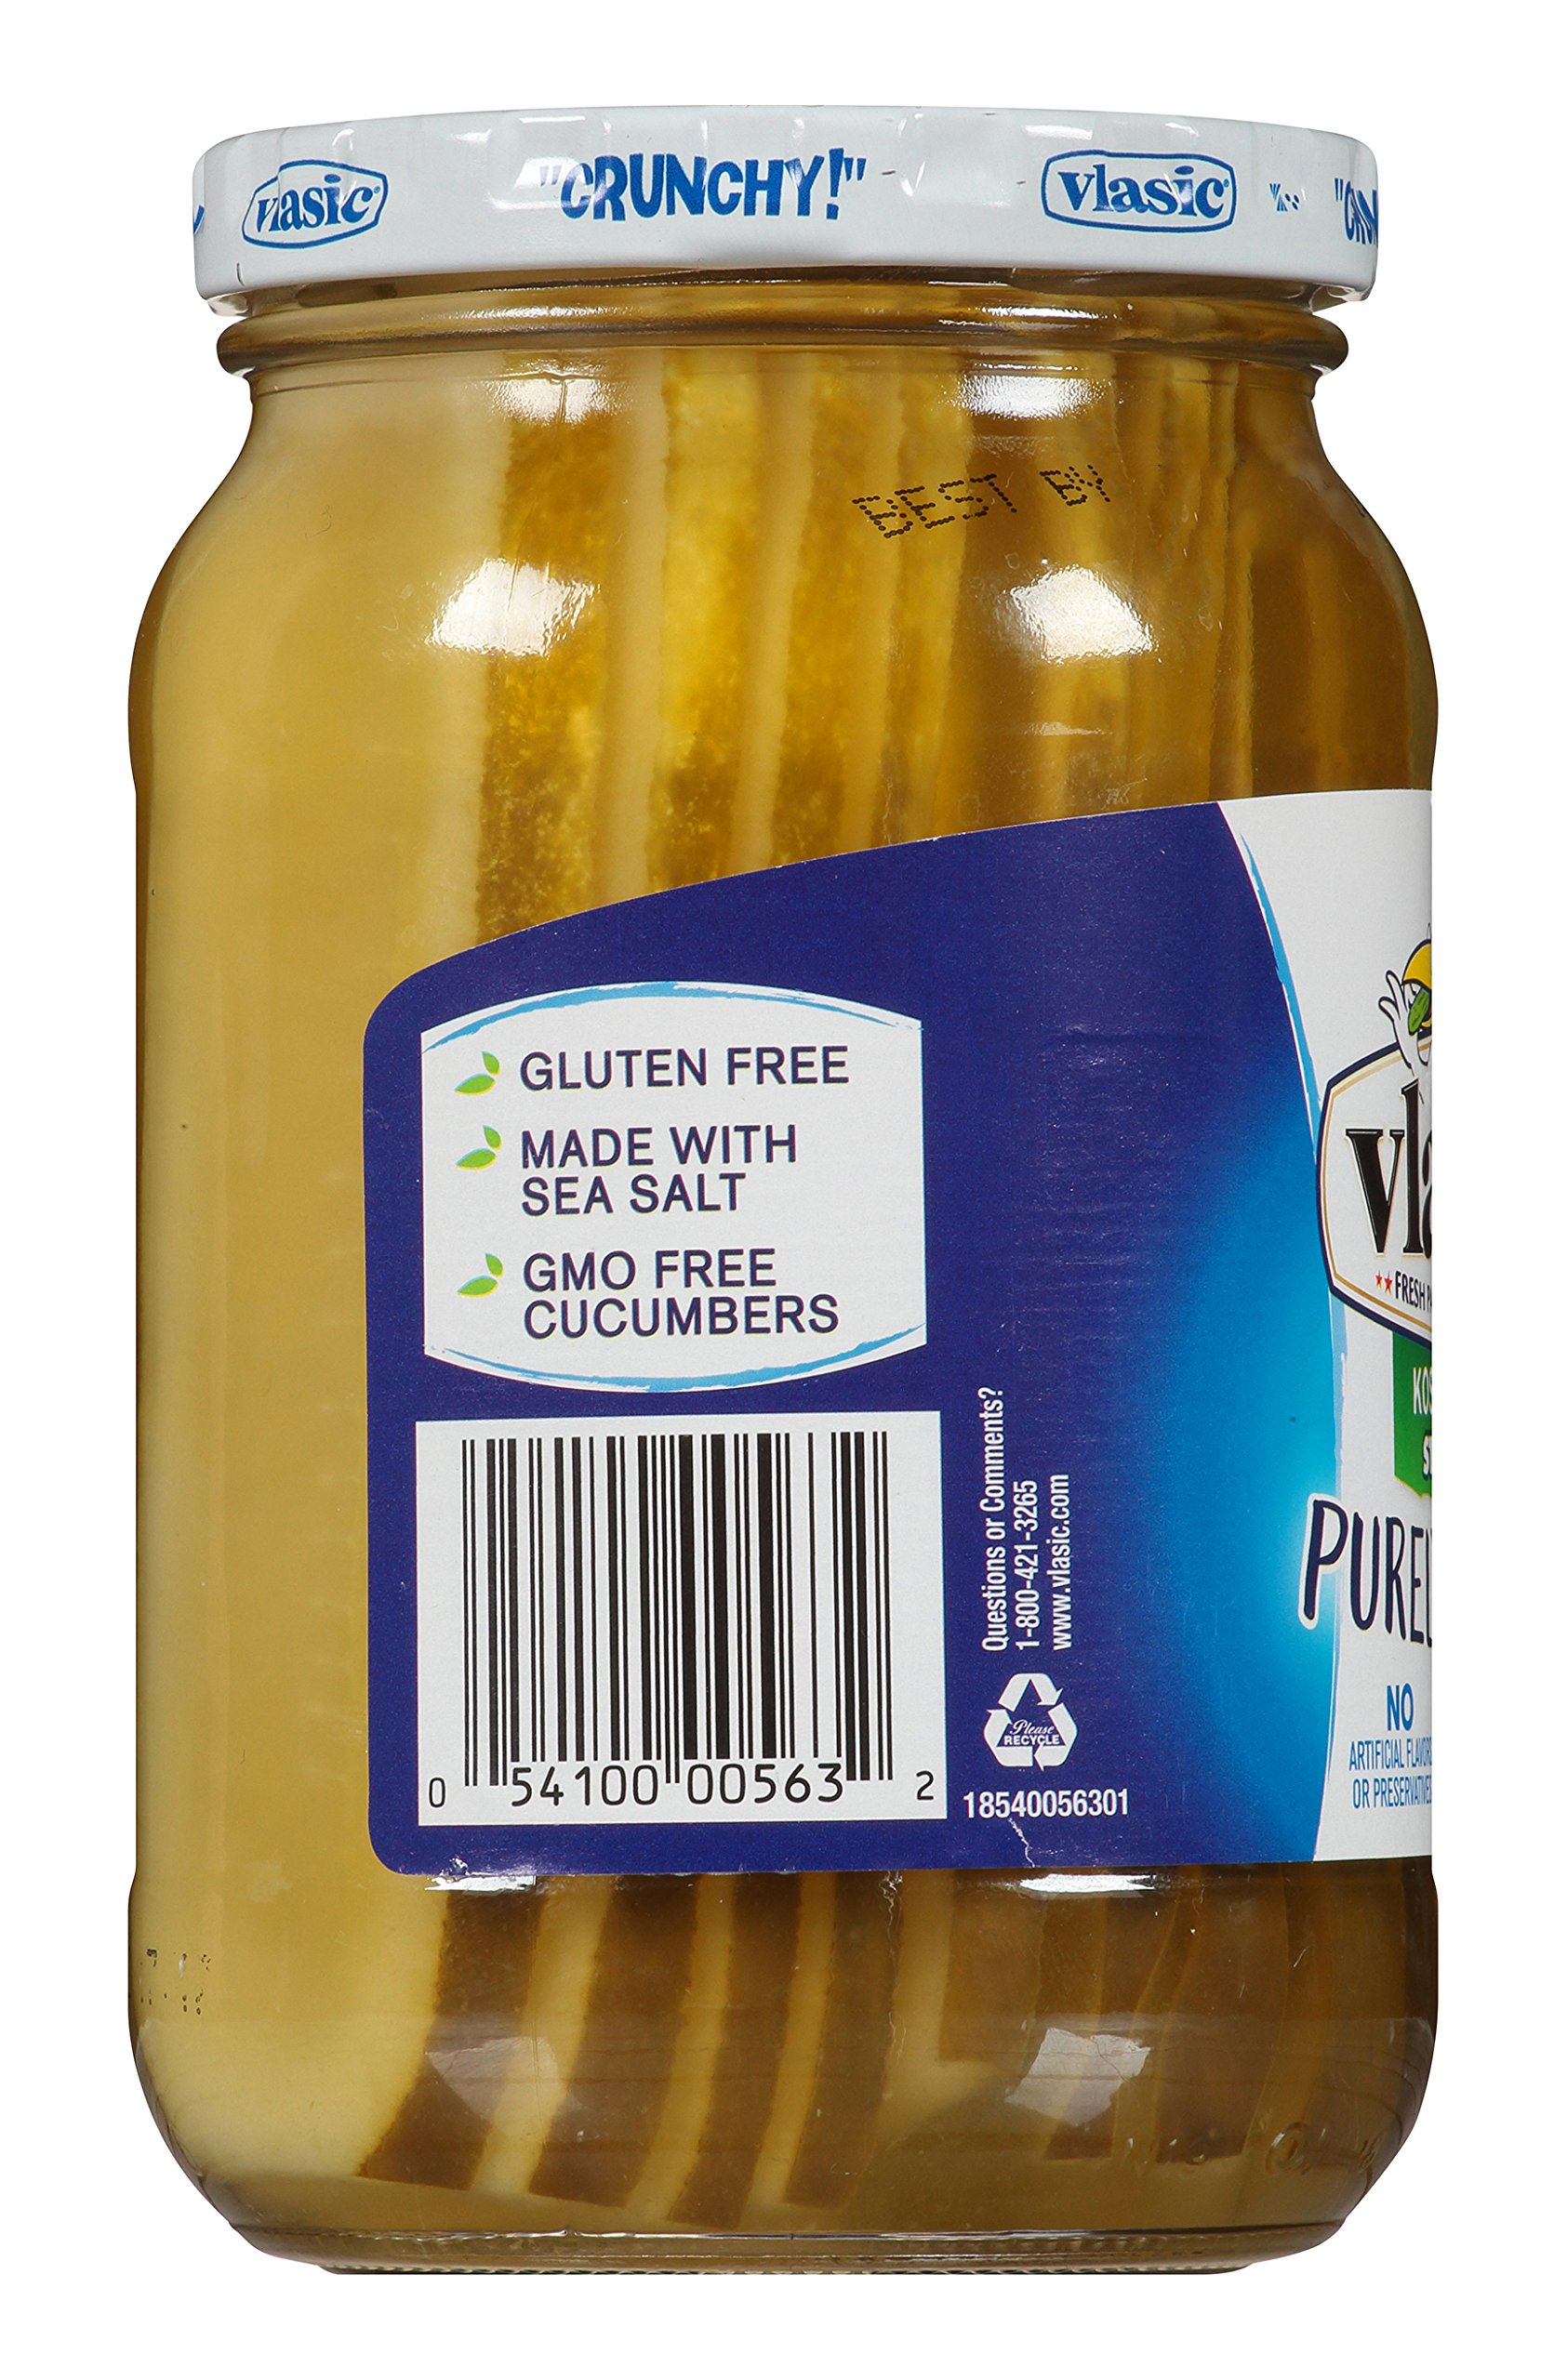 Vlasic Purely Pickles, Stackers with Kosher Dill, 16 Ounce (Pack of 6) by Vlasic (Image #6)